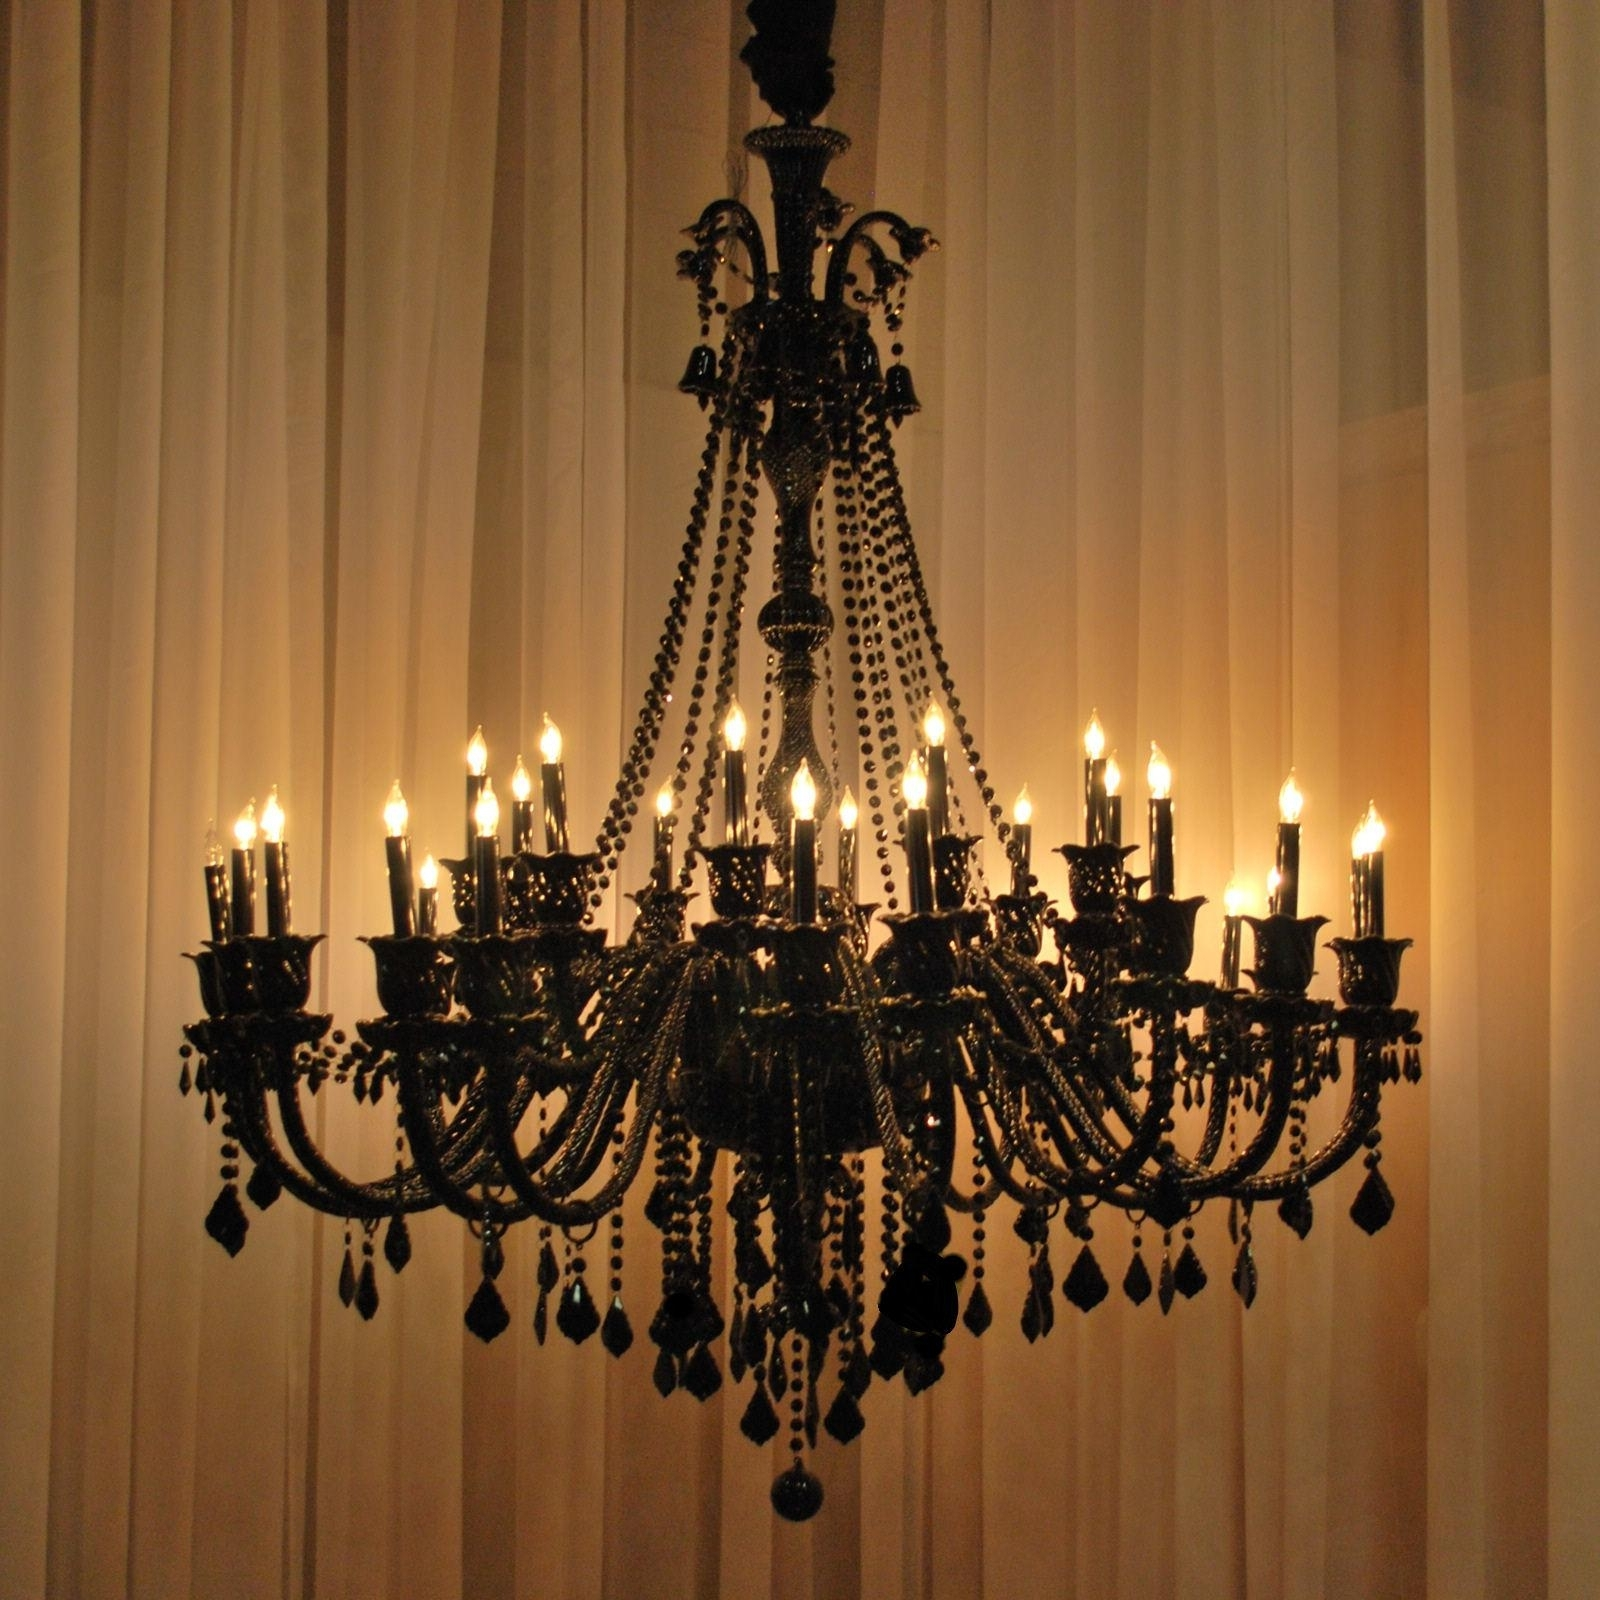 Large Chandeliers With Regard To Newest Chandelier, Chandeliers, Crystal Chandelier, Crystal Chandeliers (View 4 of 15)